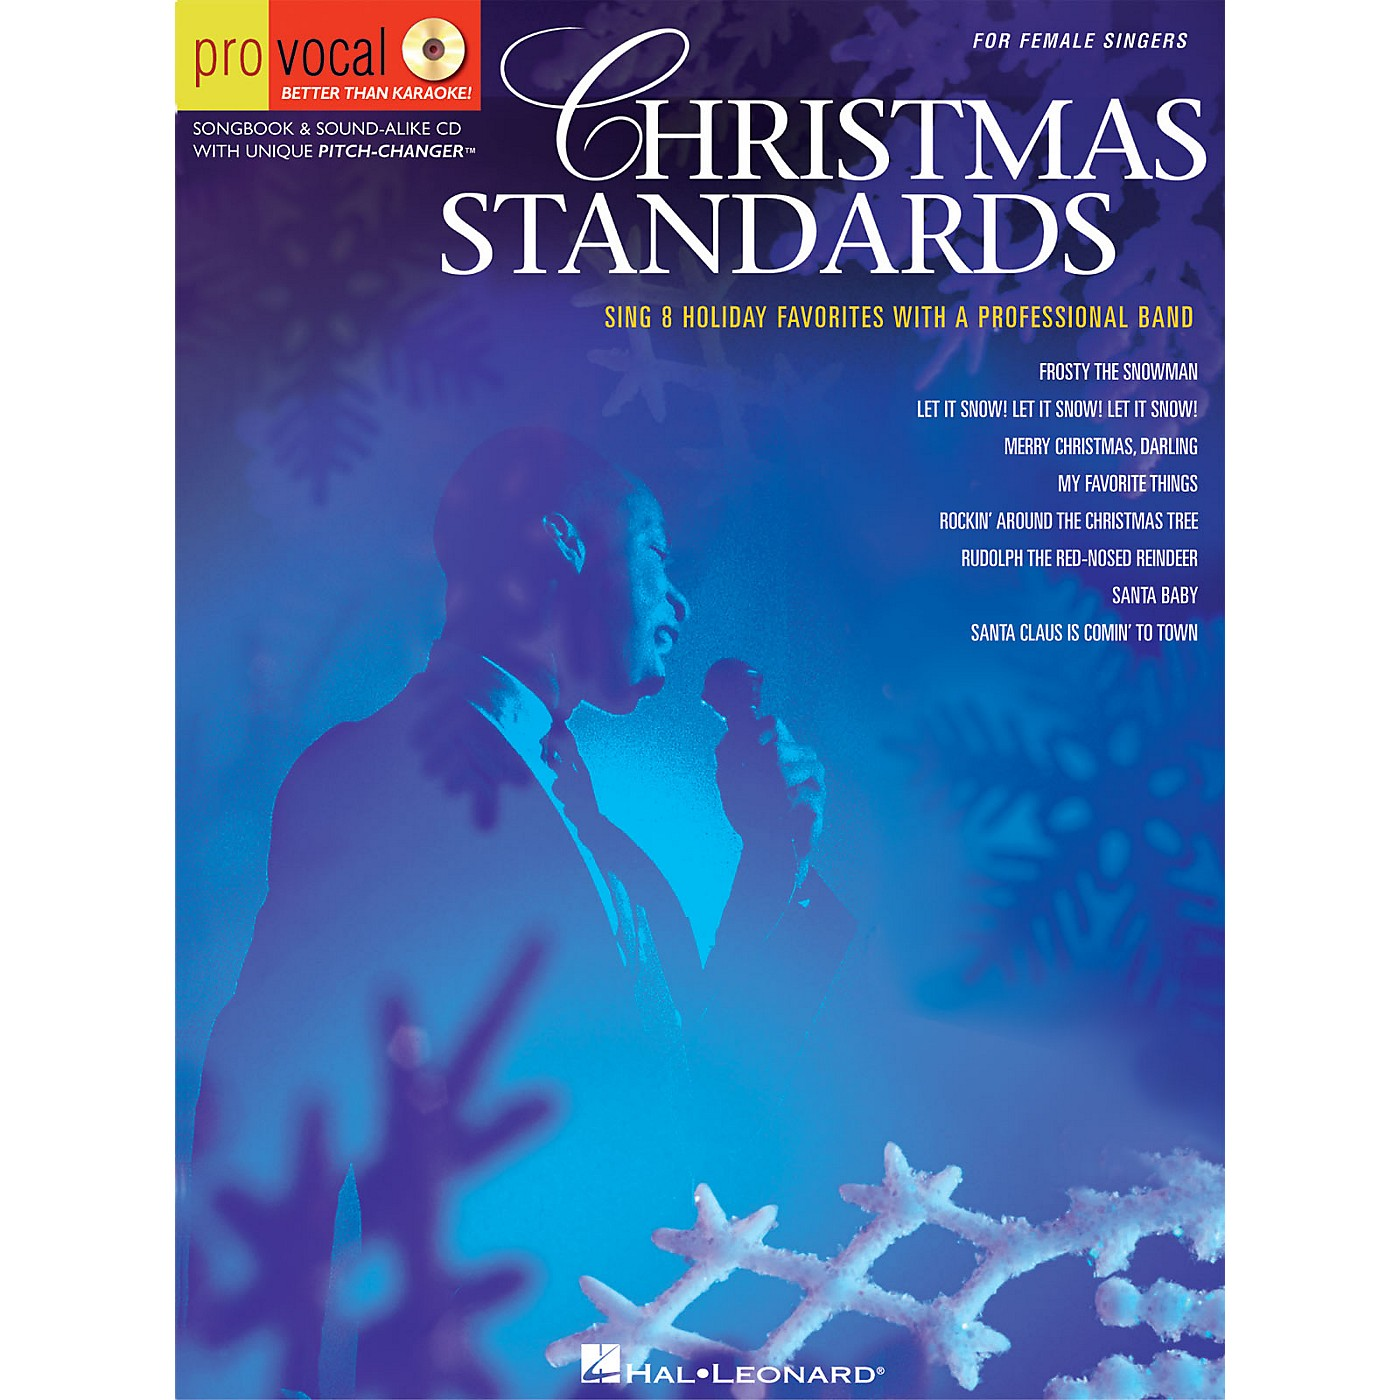 Hal Leonard Christmas Standards (Pro Vocal Men's Edition Volume 5) Pro Vocal Series Softcover with CD thumbnail